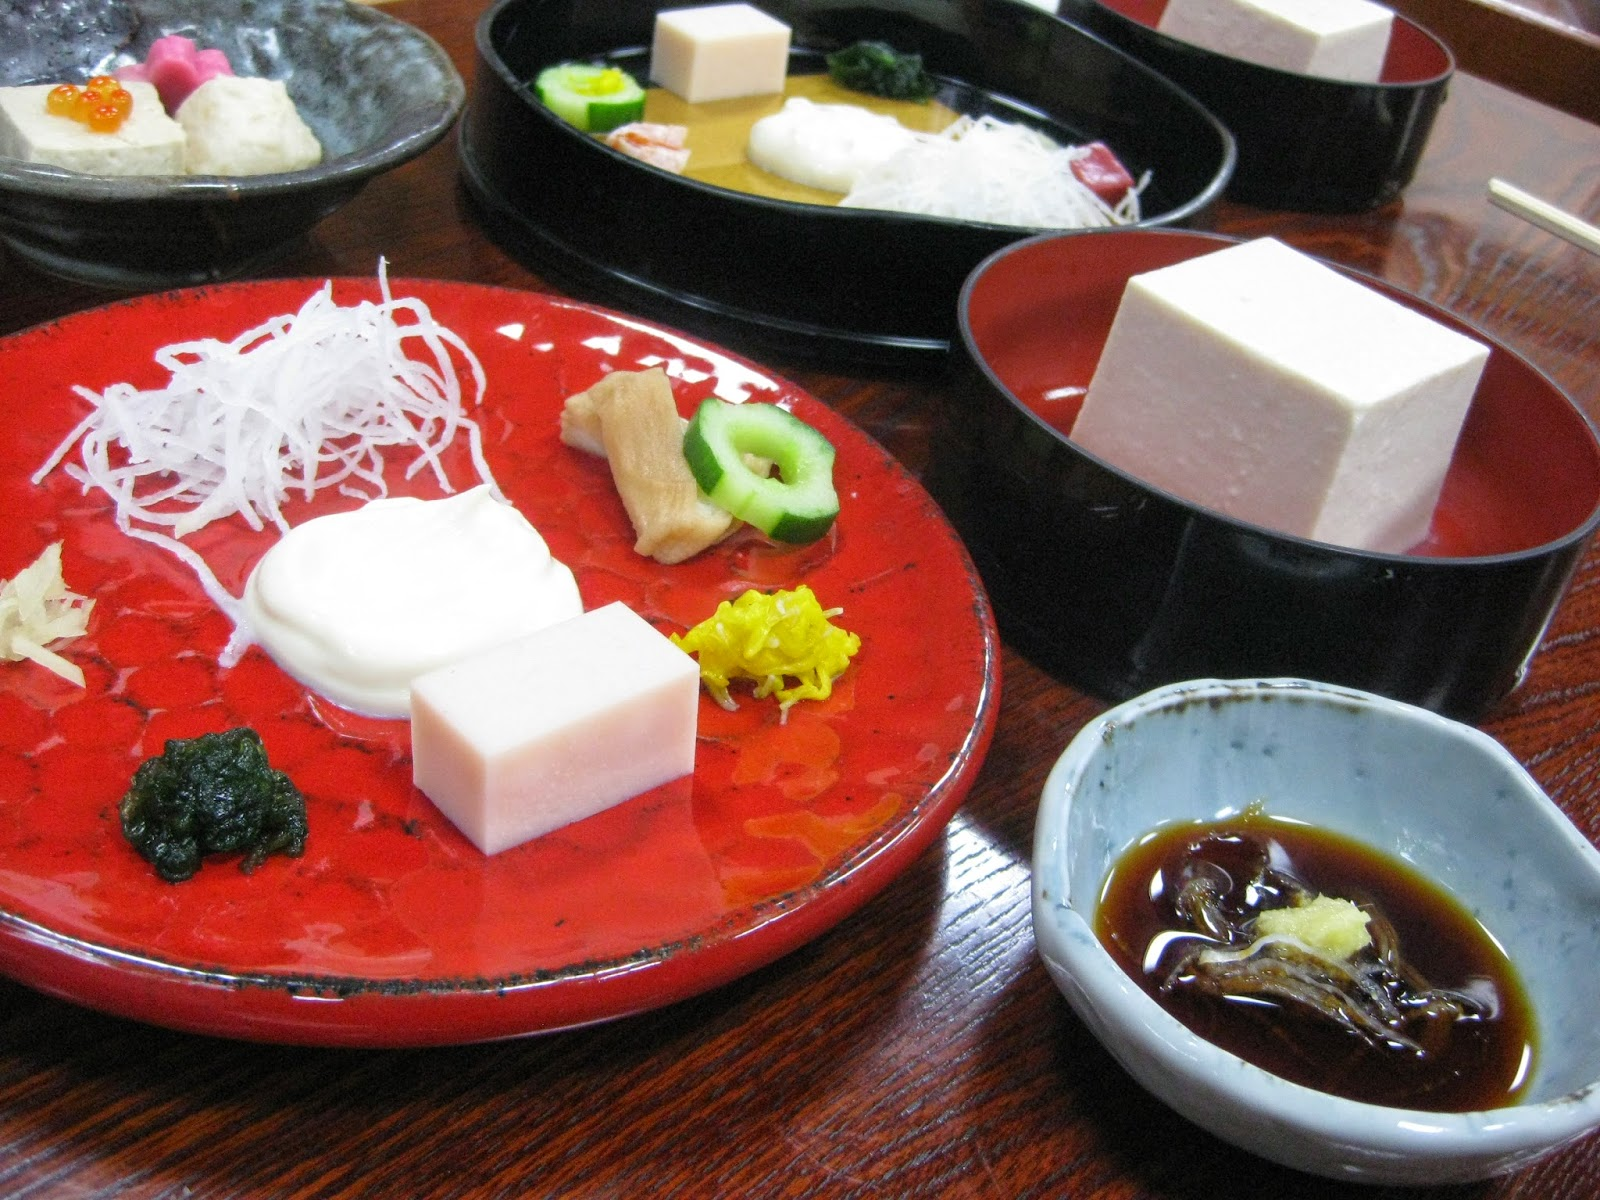 Tokyo - Tofu lunch course #1